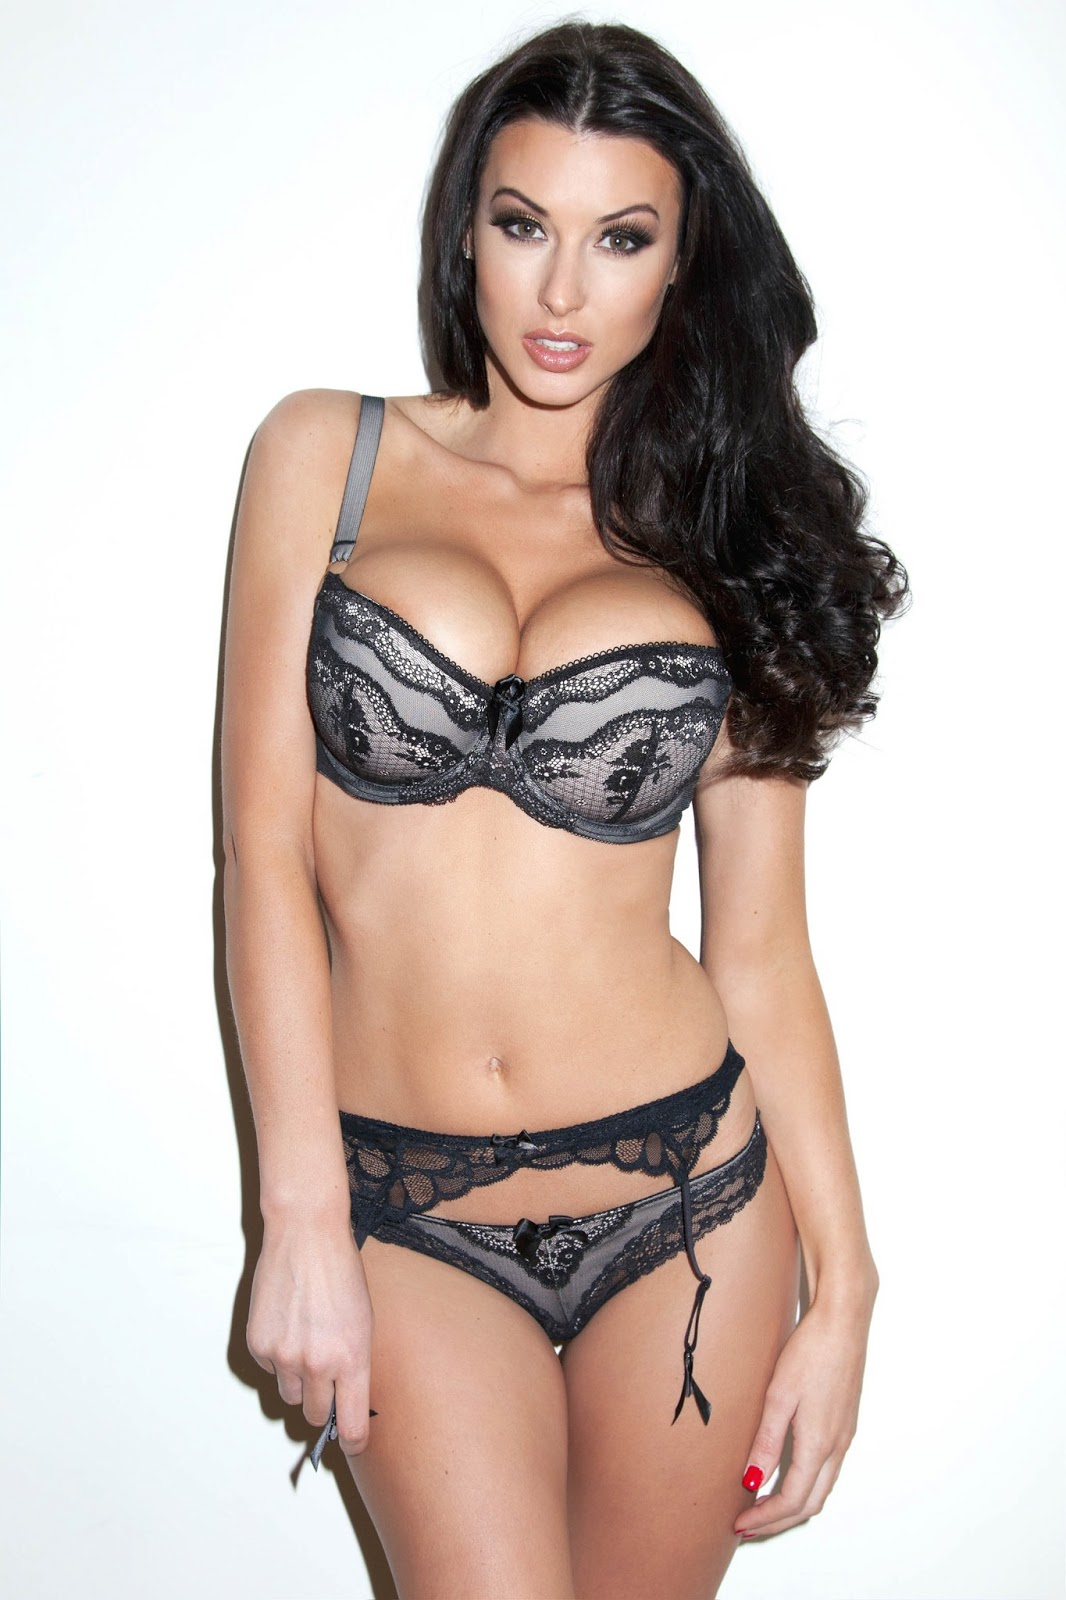 hot model alice goodwin's awesome lingerie pictures | stories wall